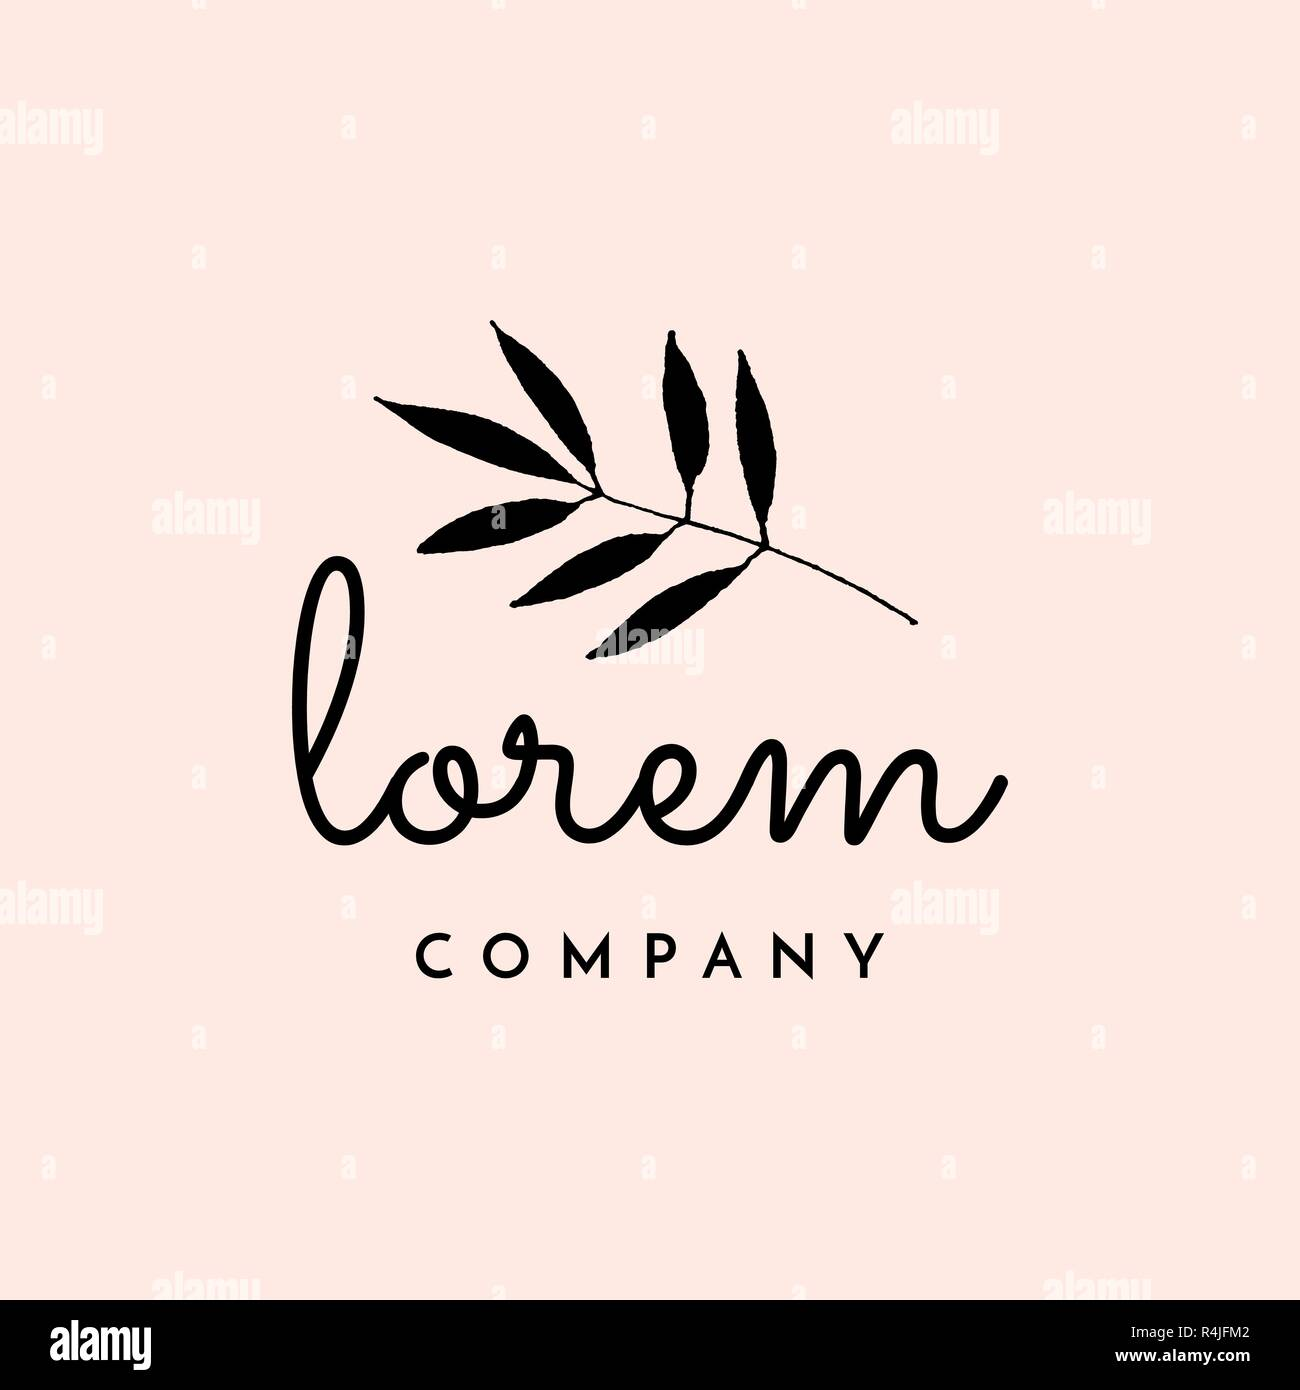 Modern And Elegant Premade Typographic Logo Design For Florists